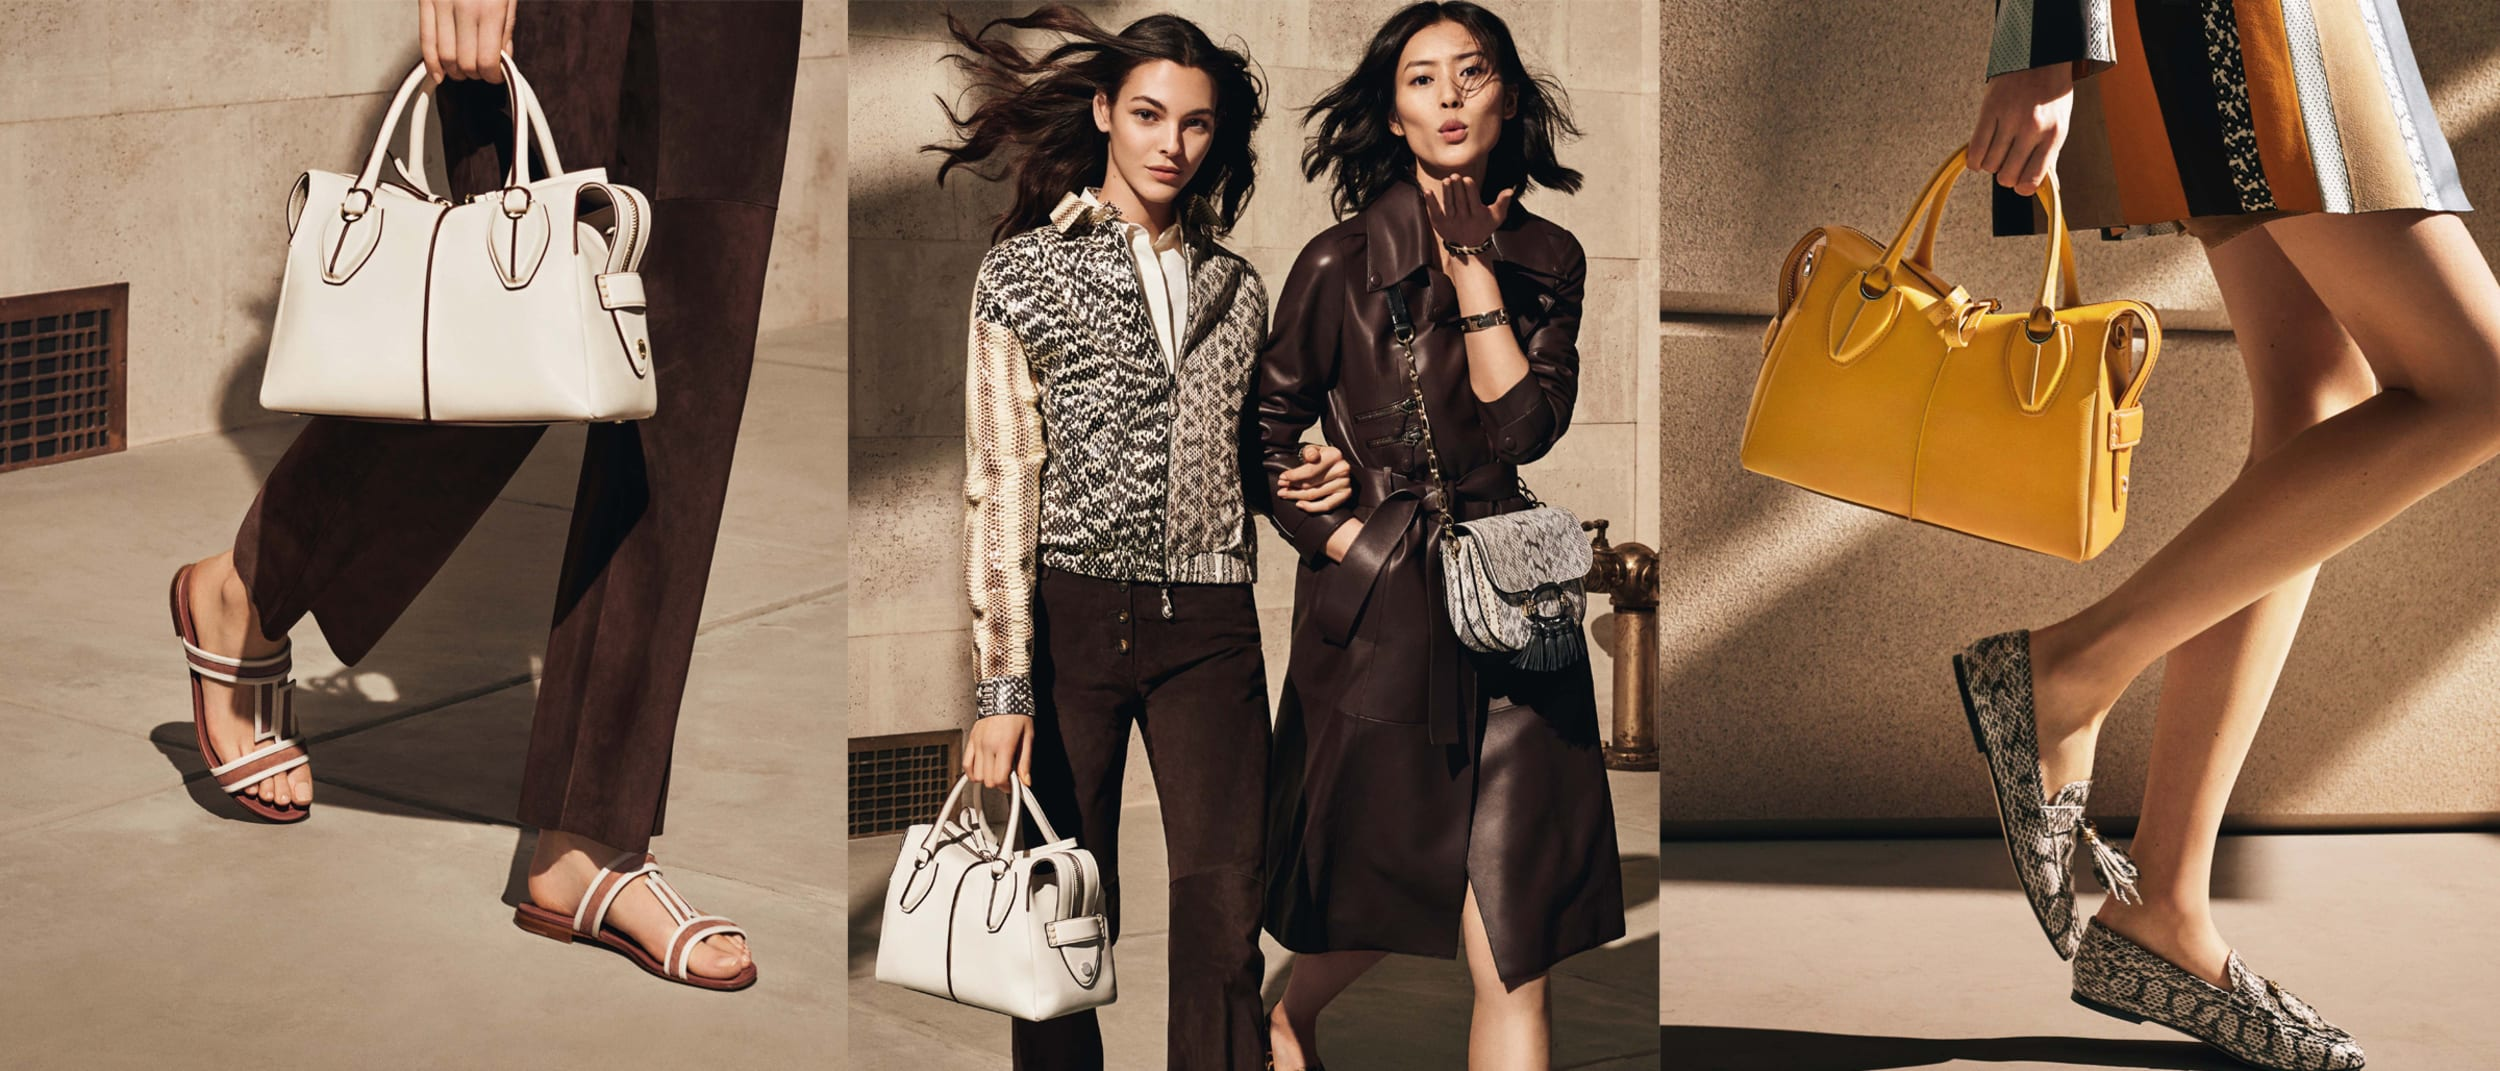 Spoil your mum on Mother's Day with TOD's